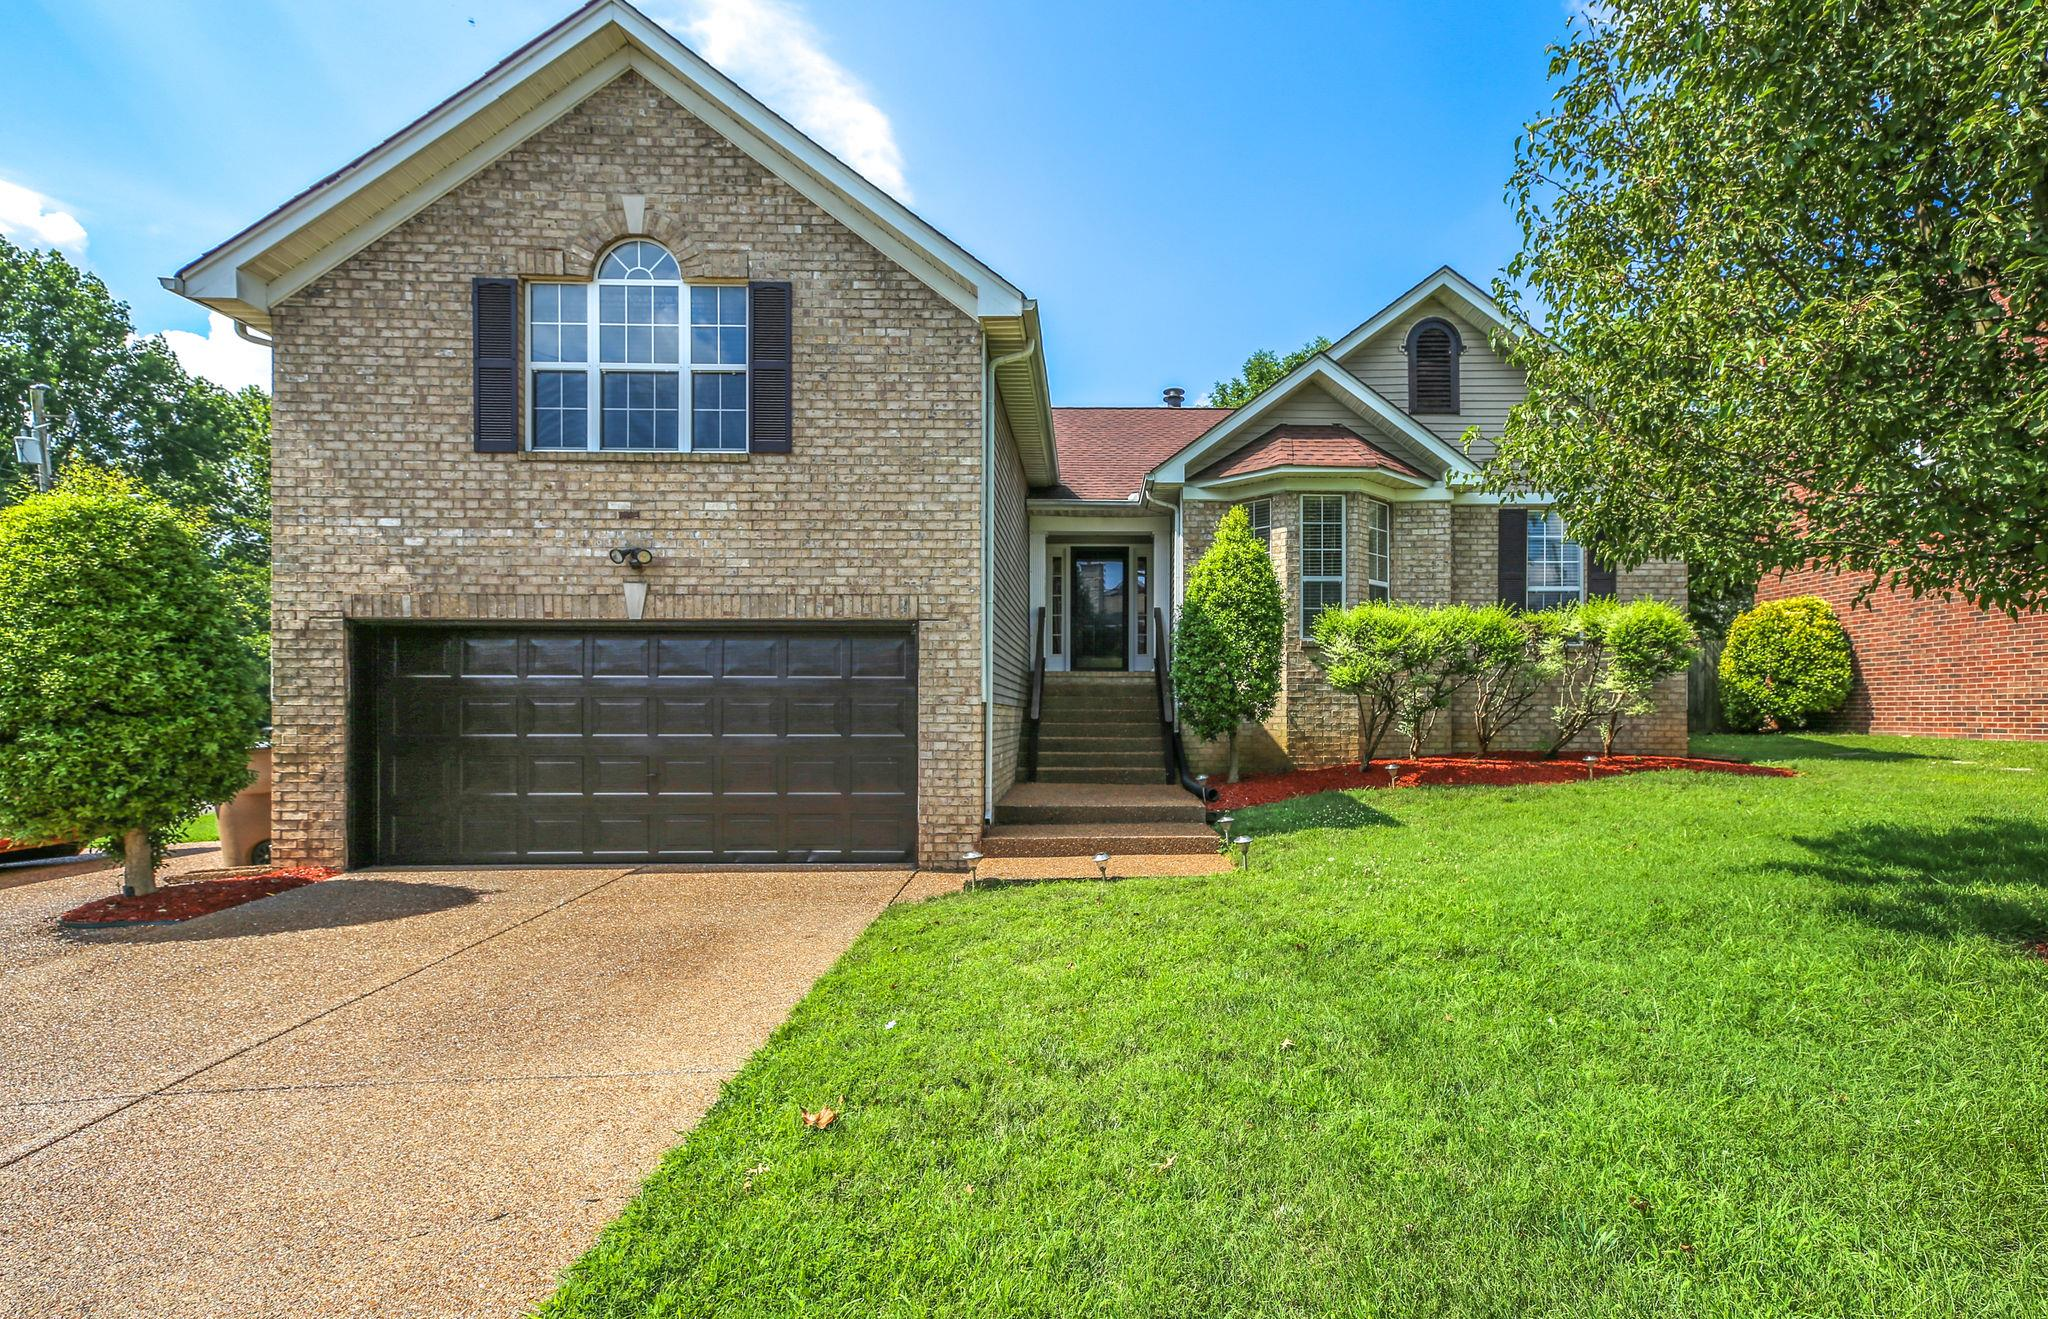 3429 Shakertown Rd, Nashville-Antioch in Davidson County County, TN 37013 Home for Sale